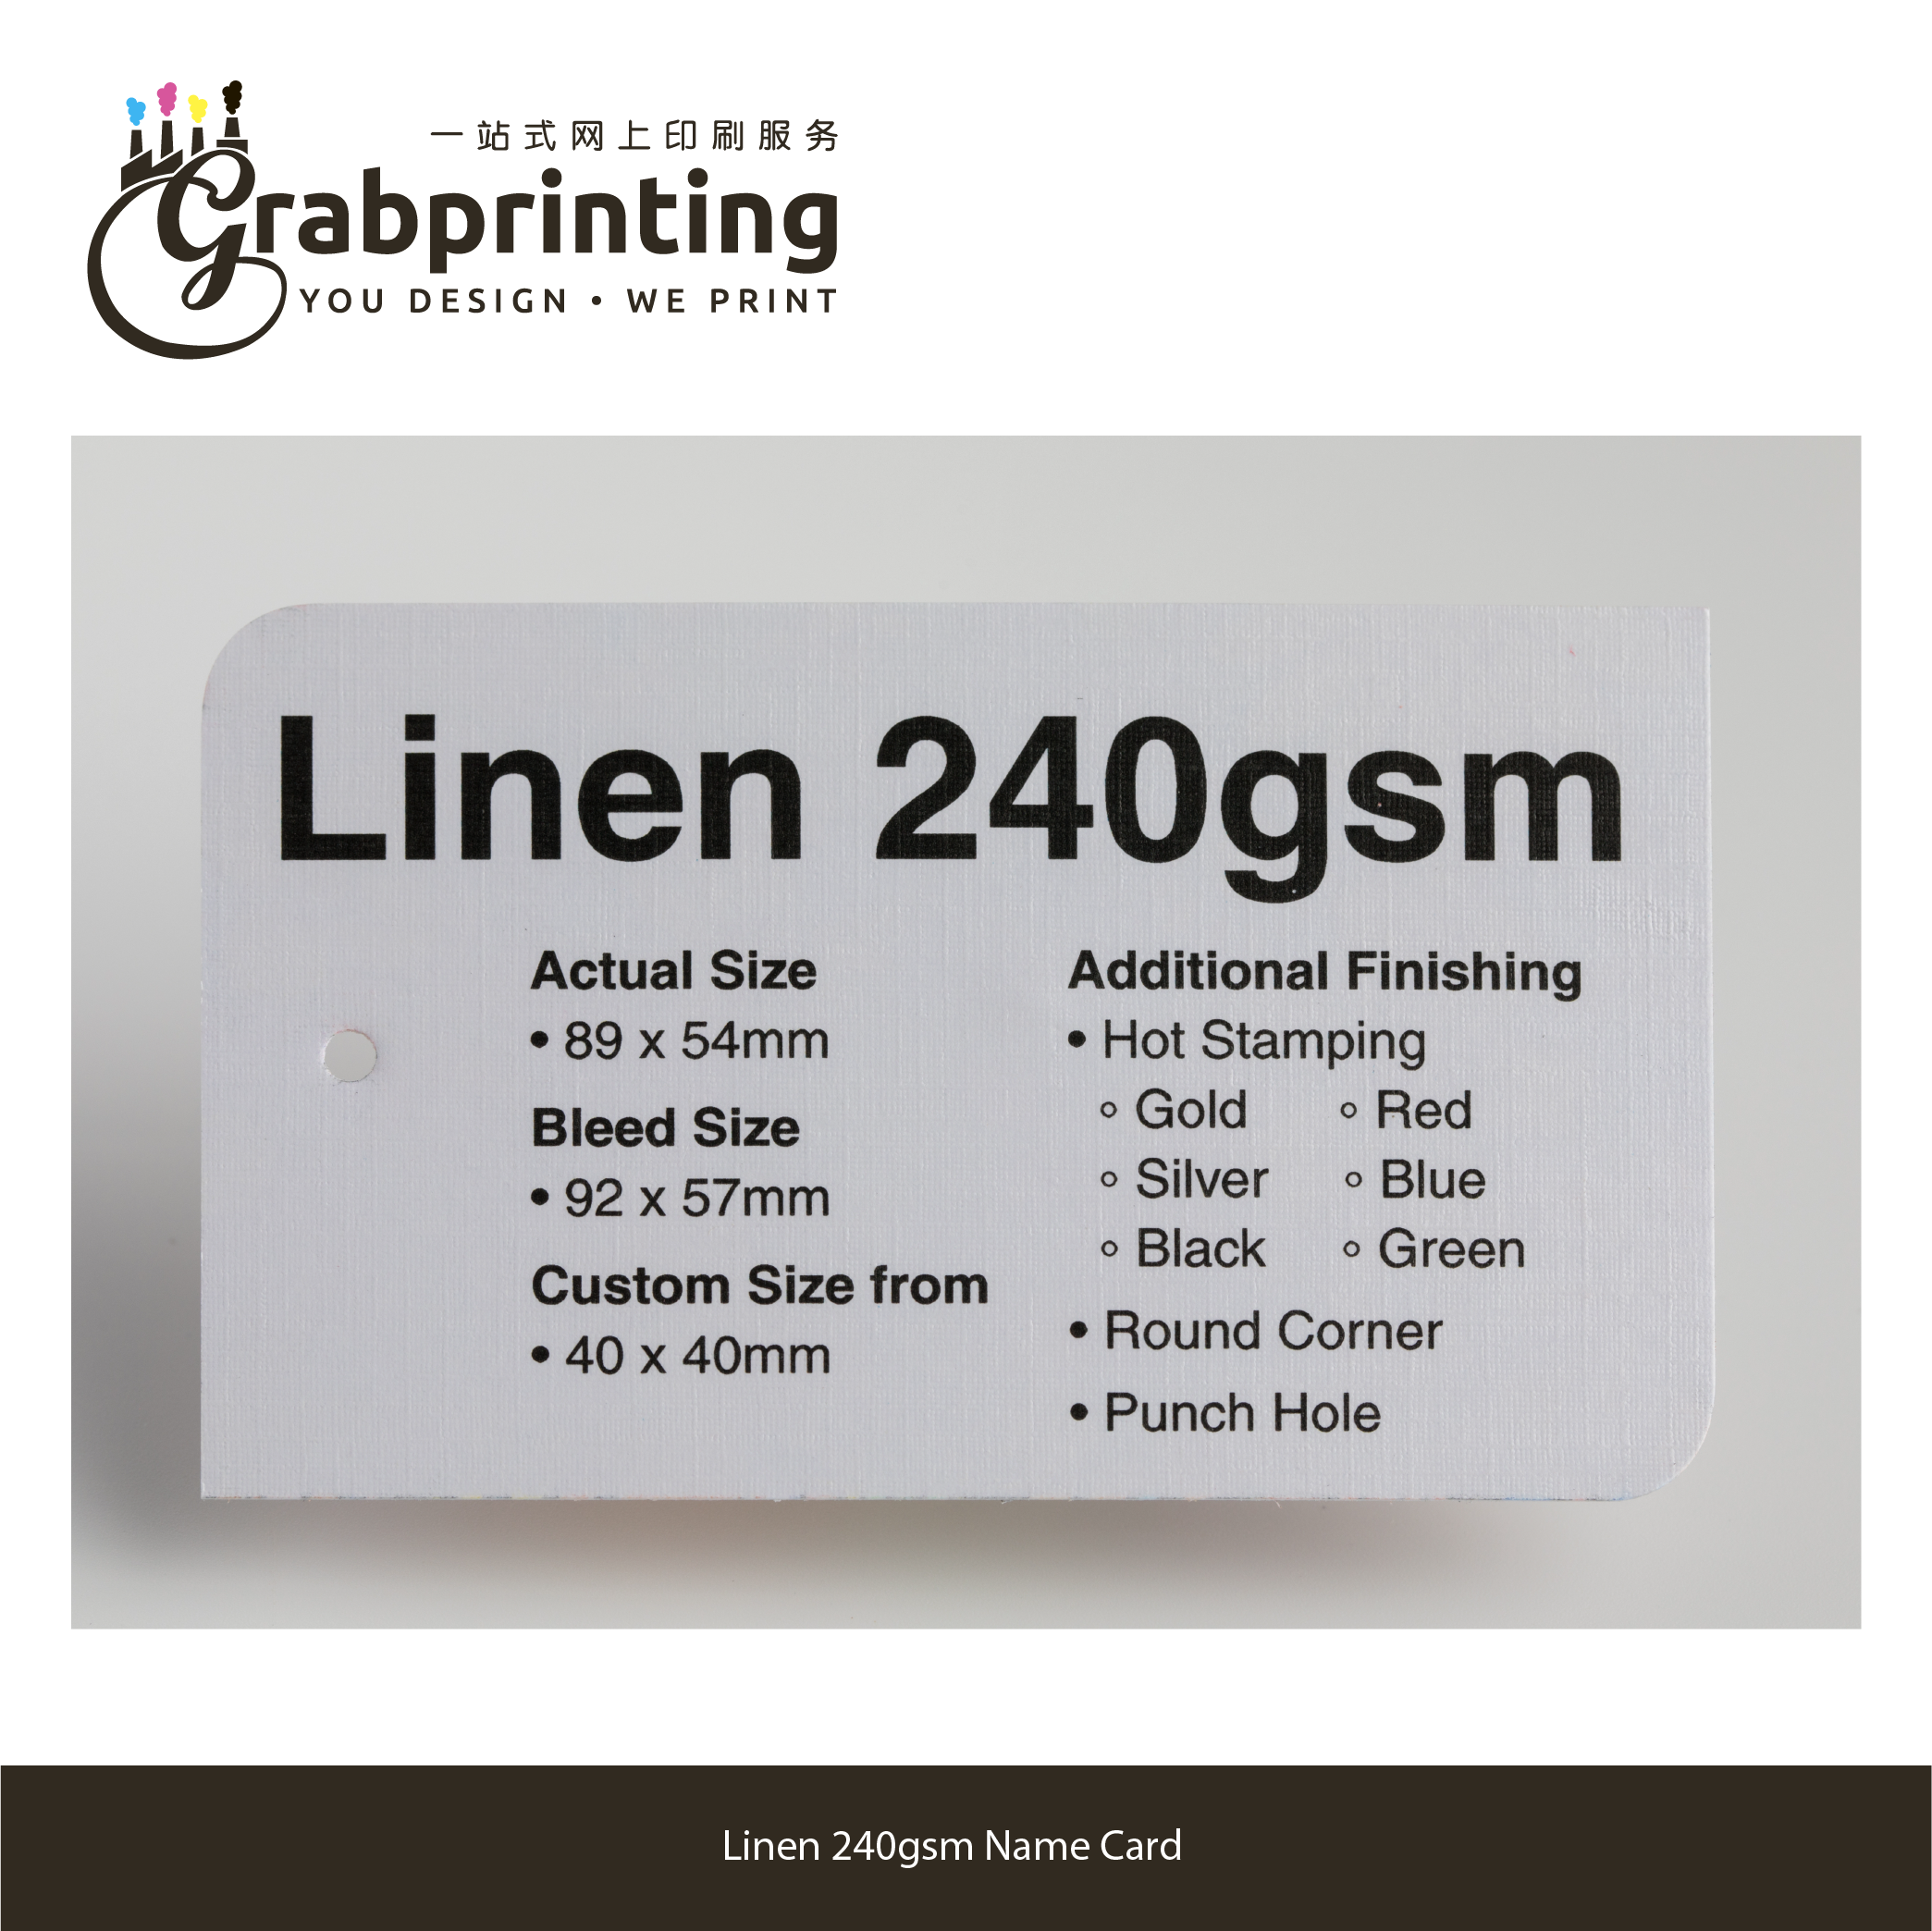 Name Card Sample Kit grabprinting 47 Linen 240gsm Name Card 501px 501px